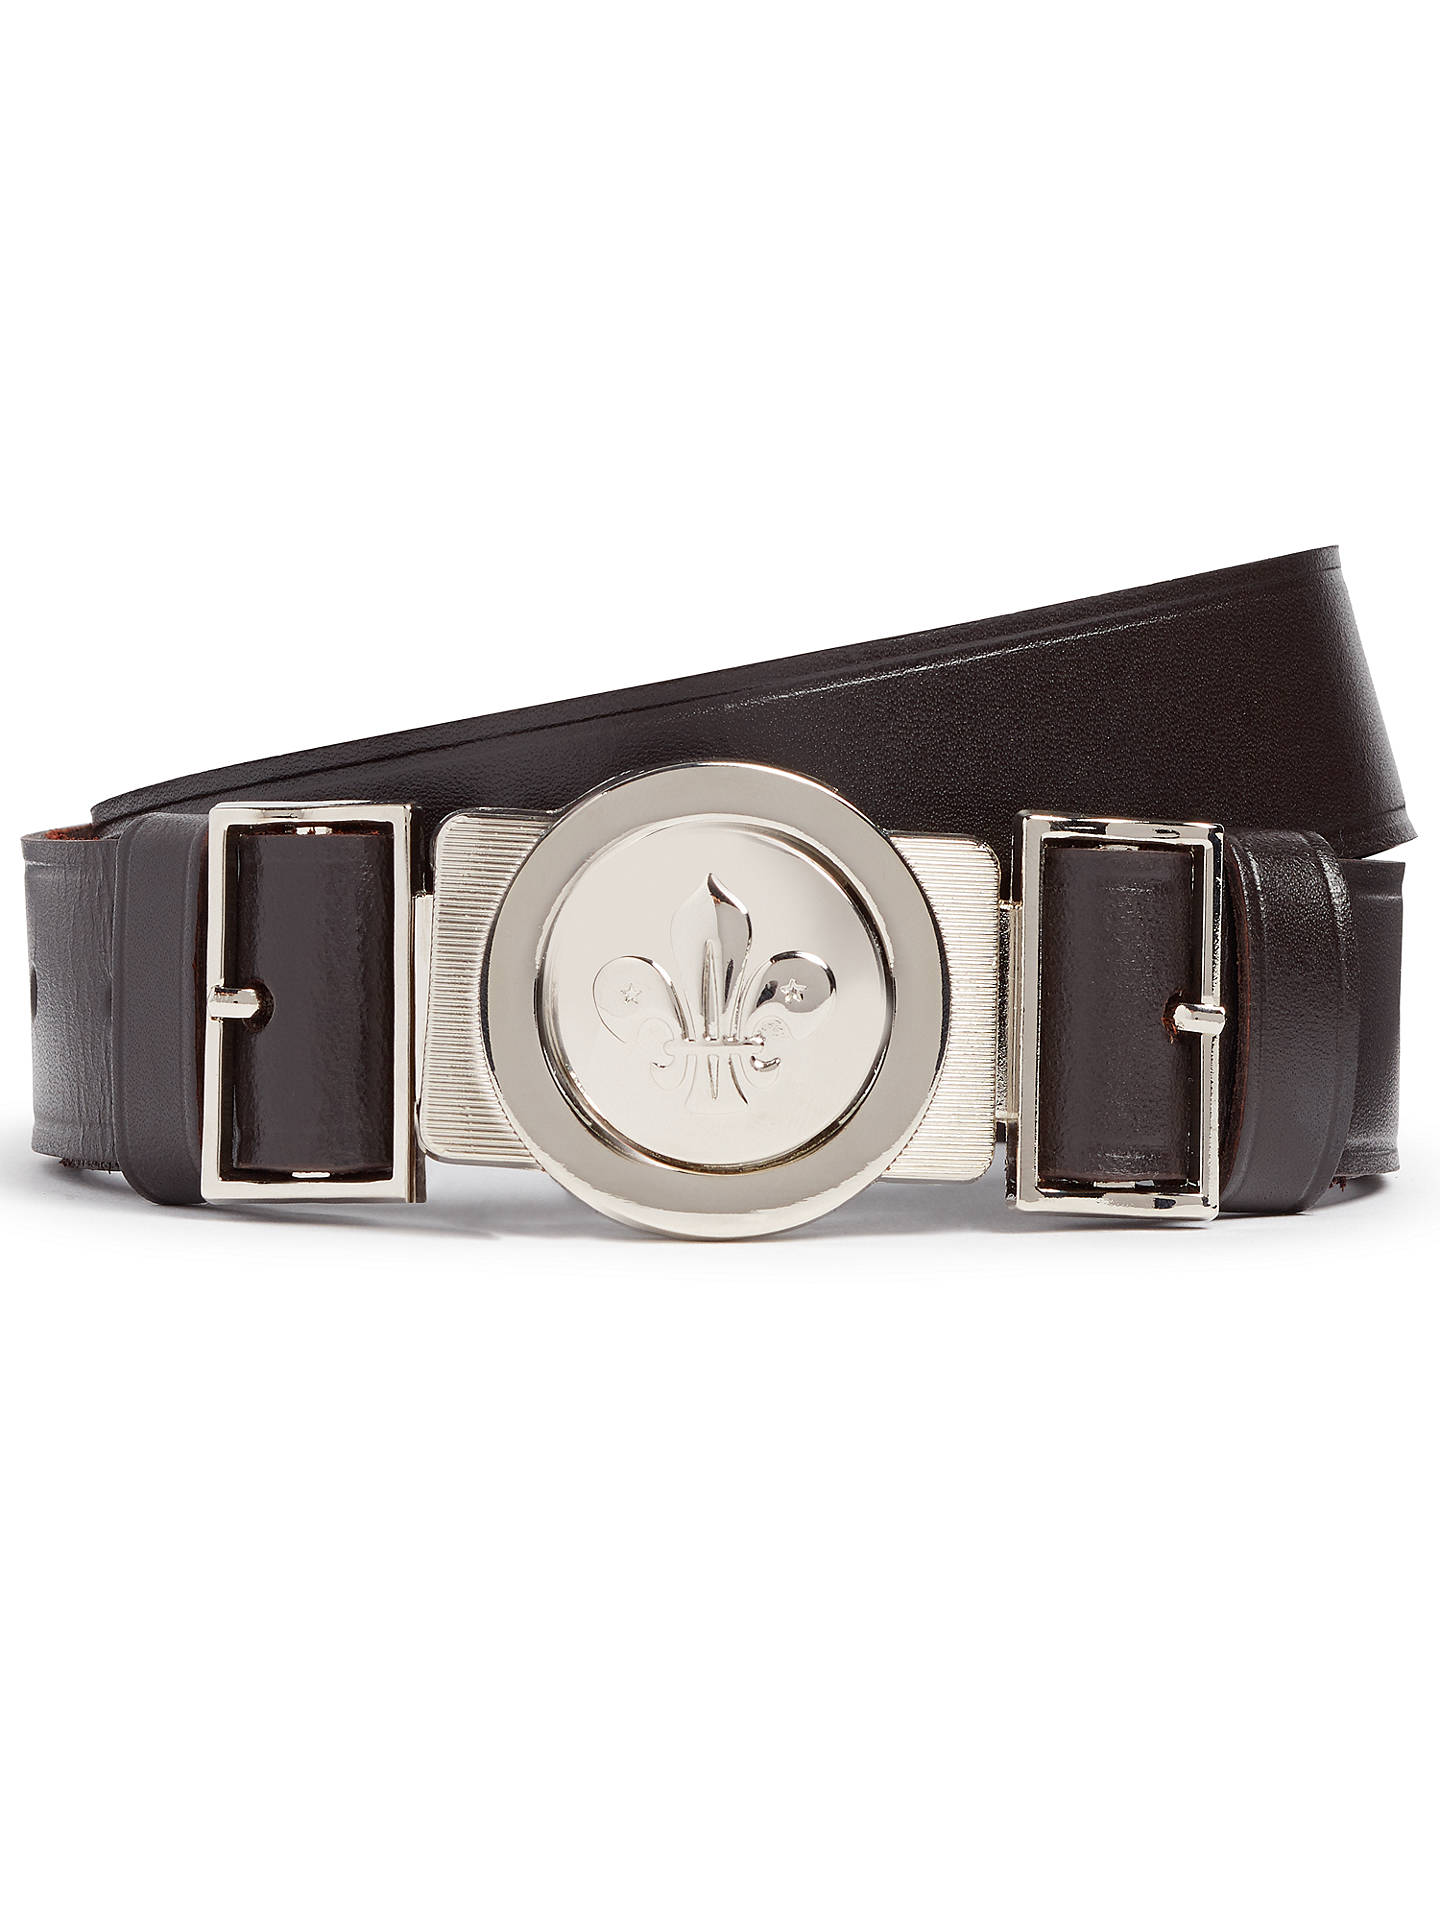 BuyScouts Leather Belt, Brown, L/XL Online at johnlewis.com